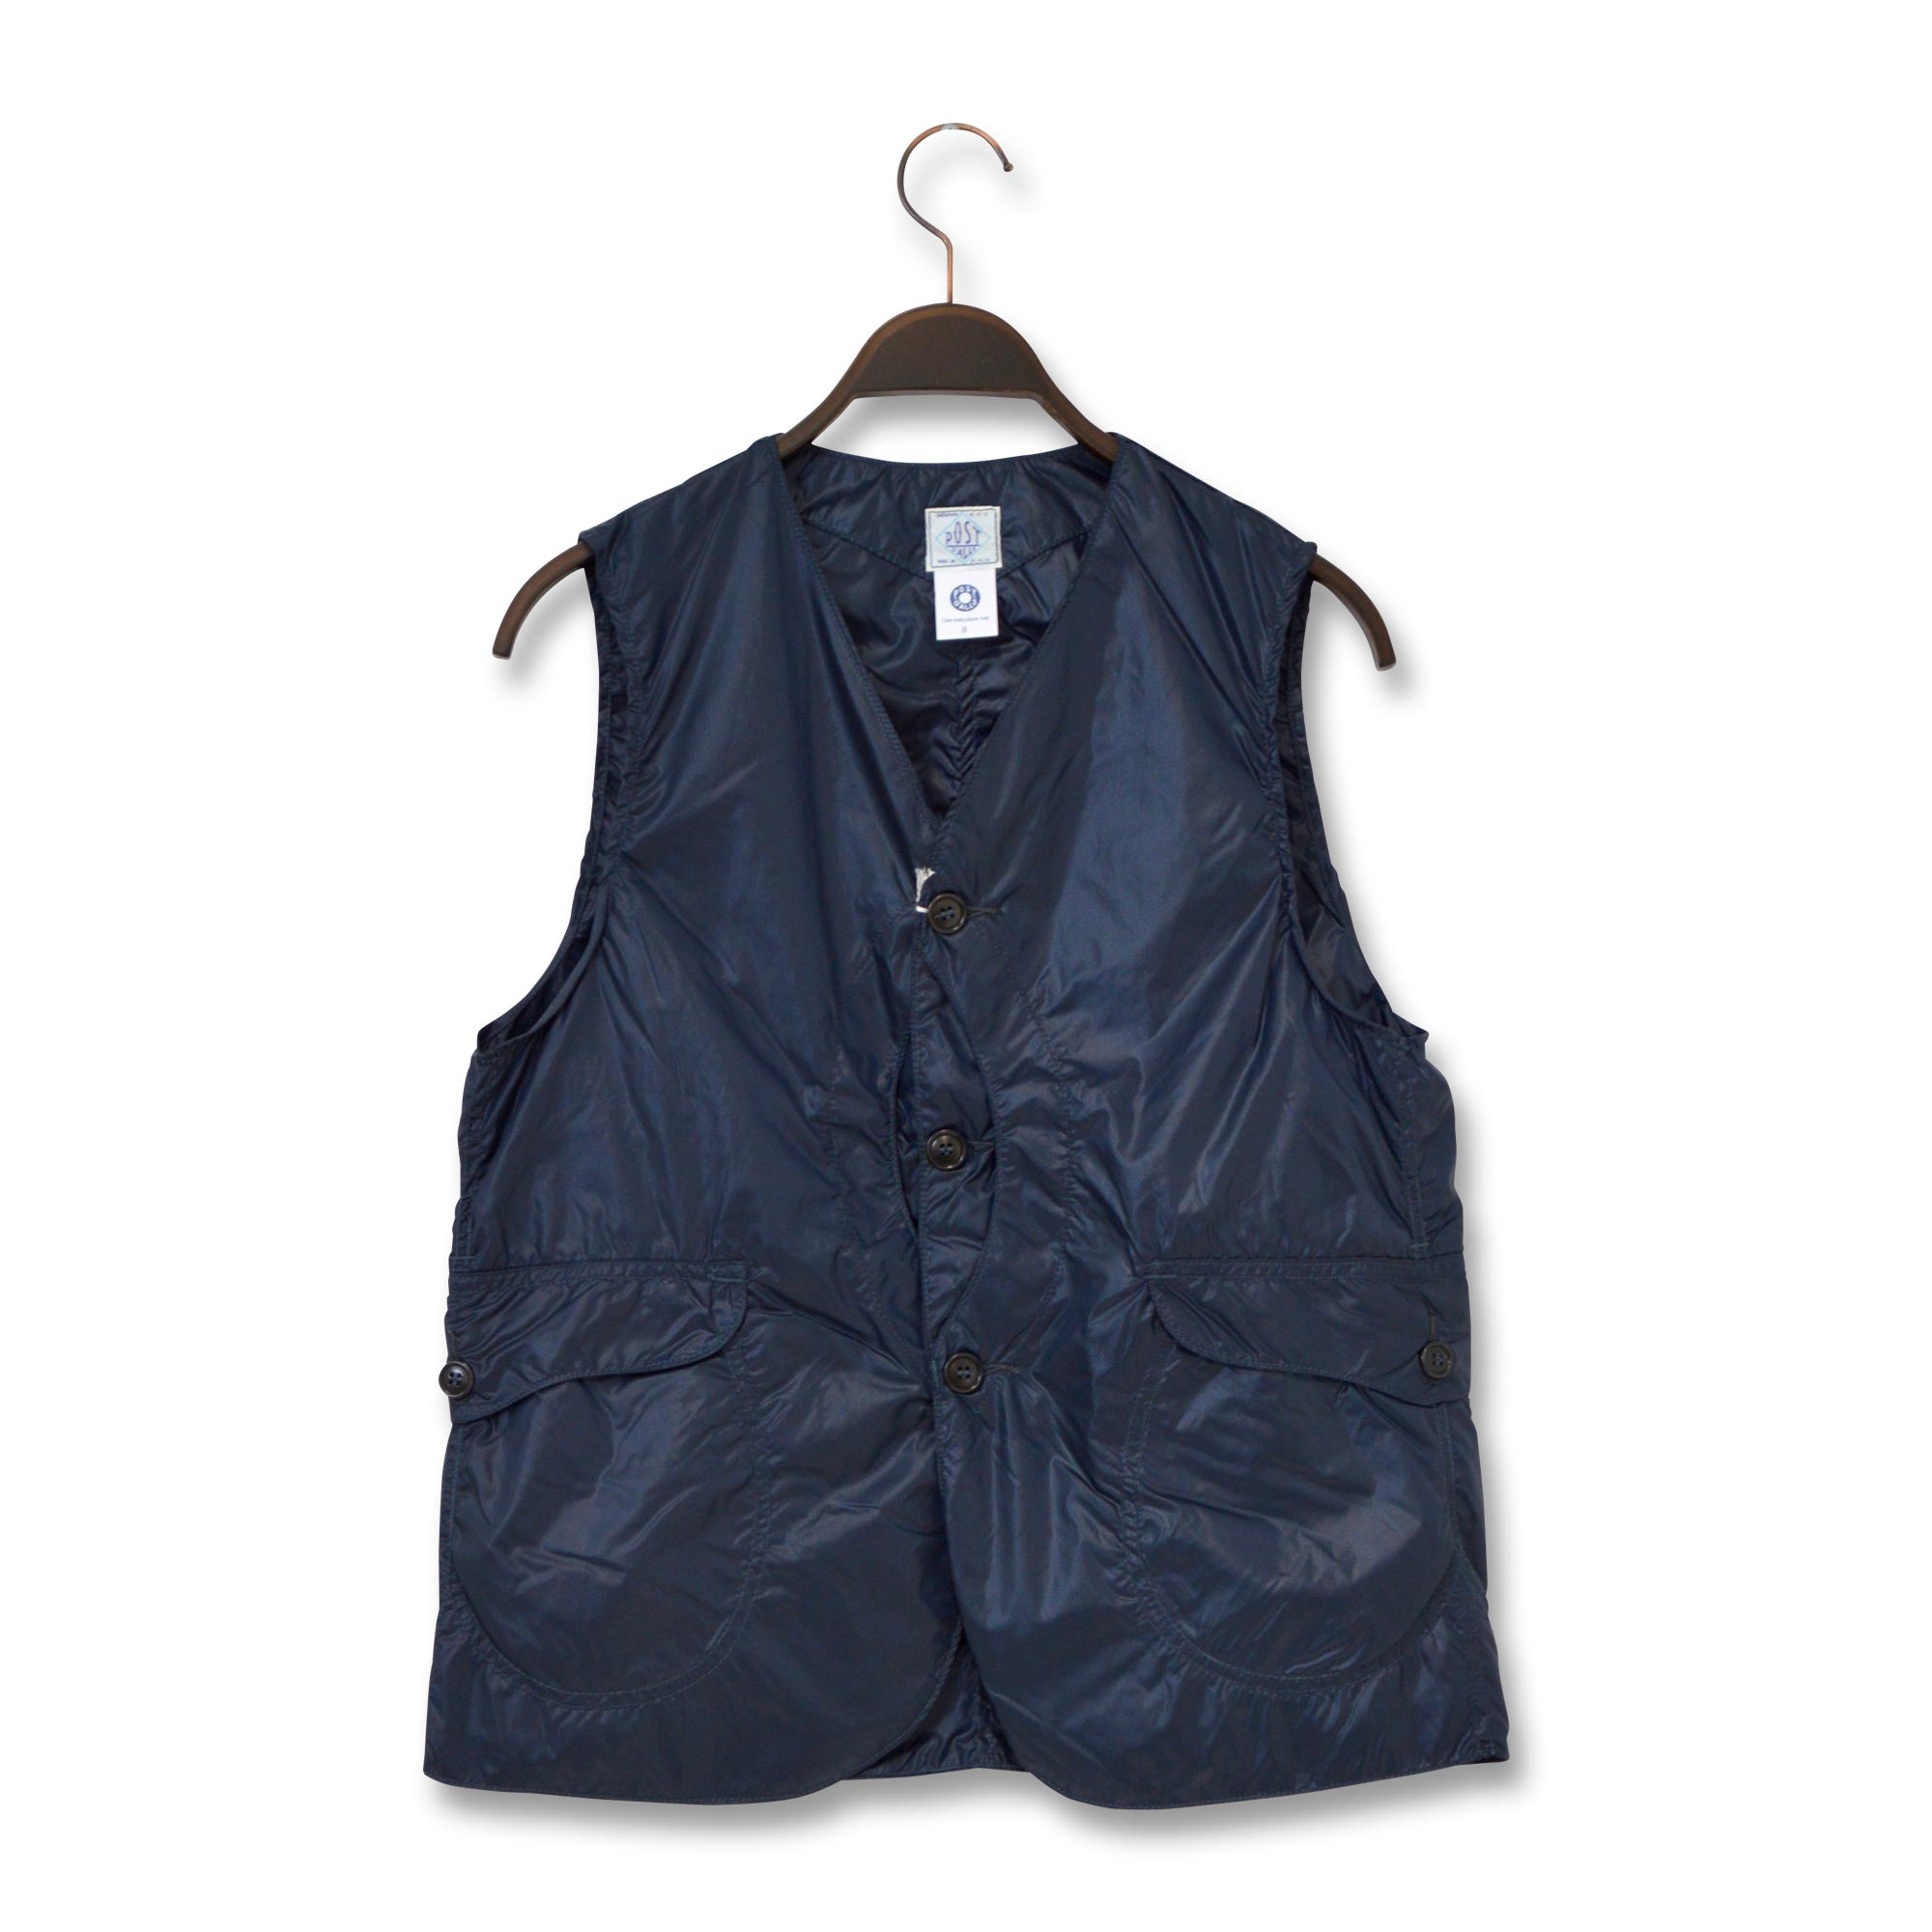 POST OVERALLS(ポストオーバーオールズ)/1512 ROYAL TRAVELER/NYLON TAFFETA